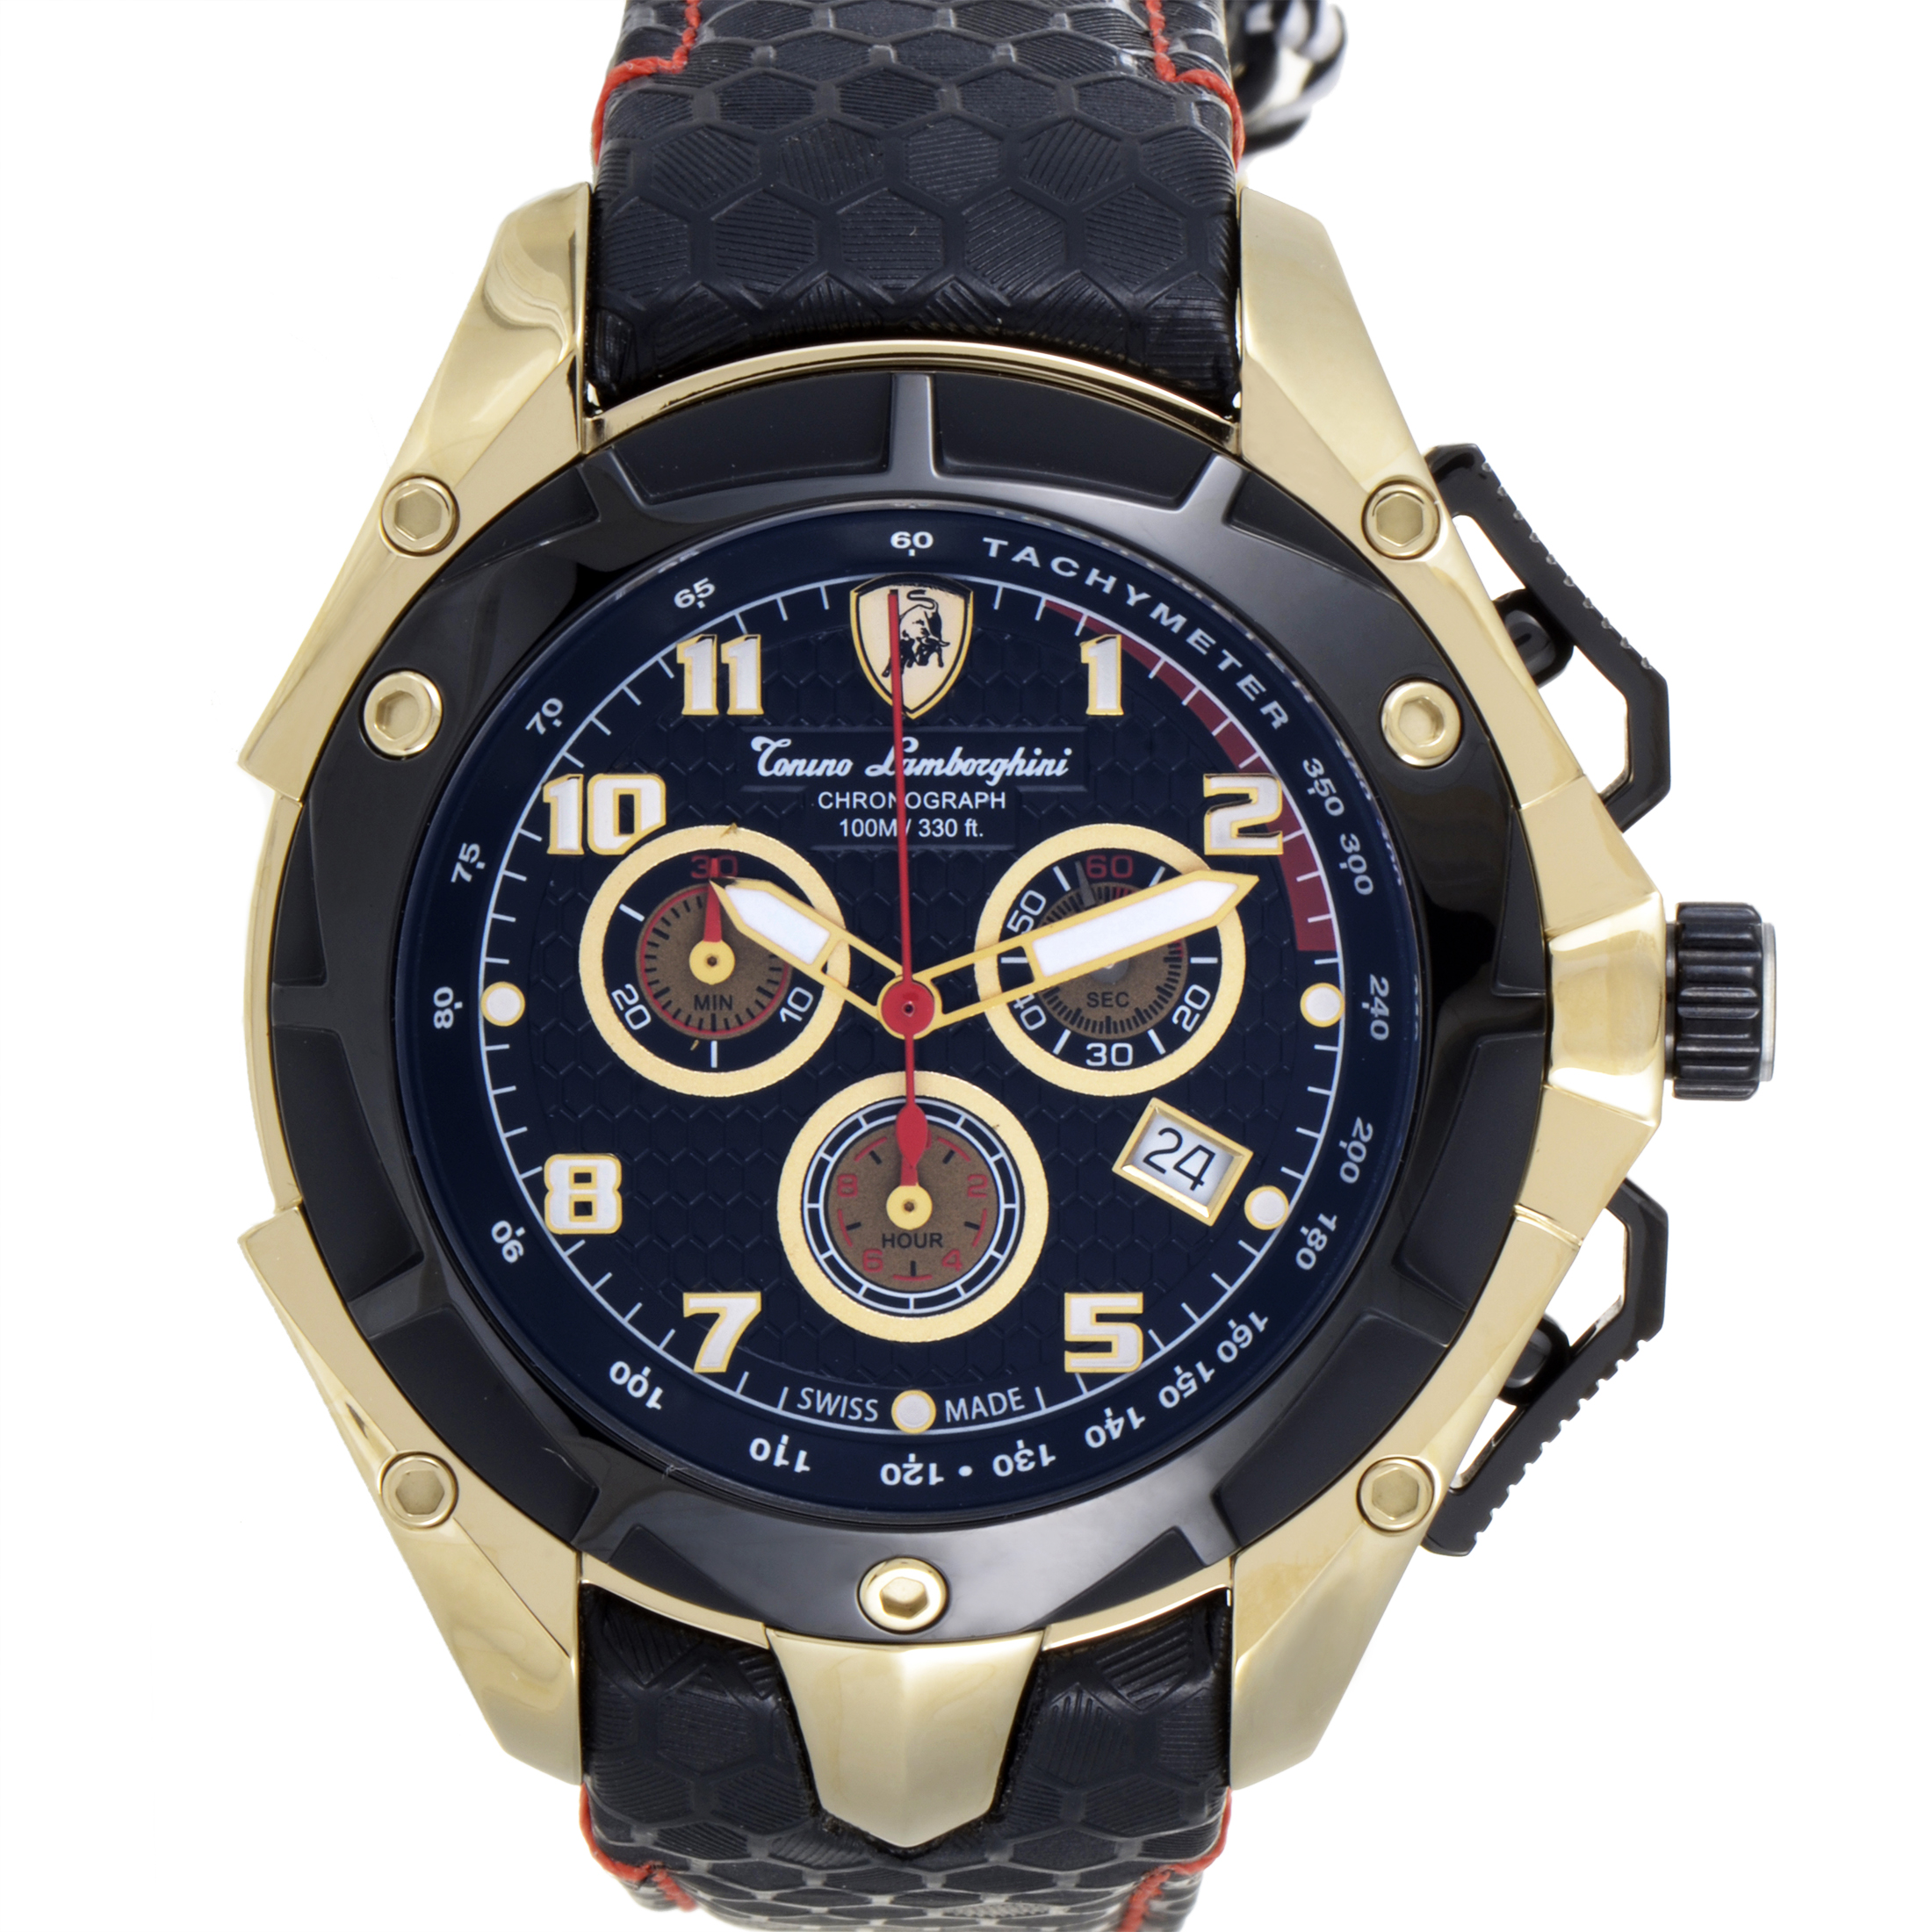 Spyder Men's Quartz Chronograph Watch 3400 3405